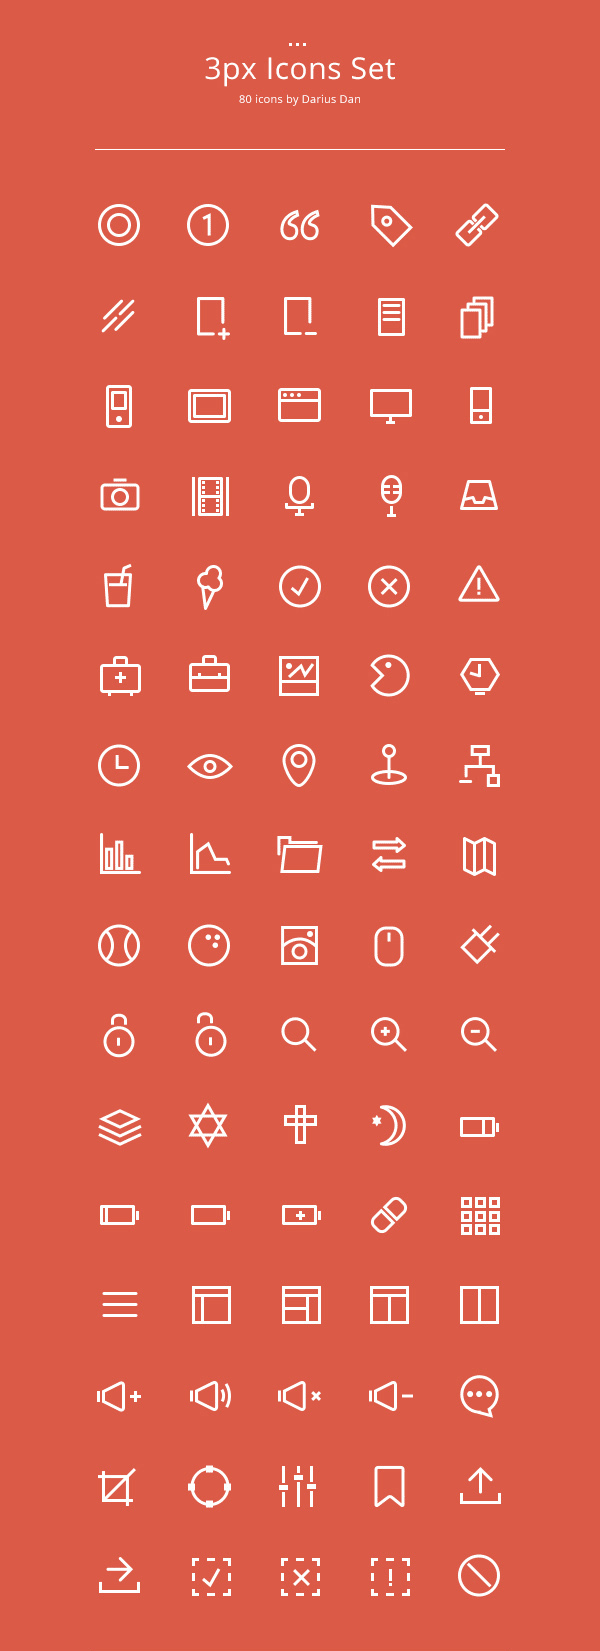 3px Outline Icons Set (80 Icons)